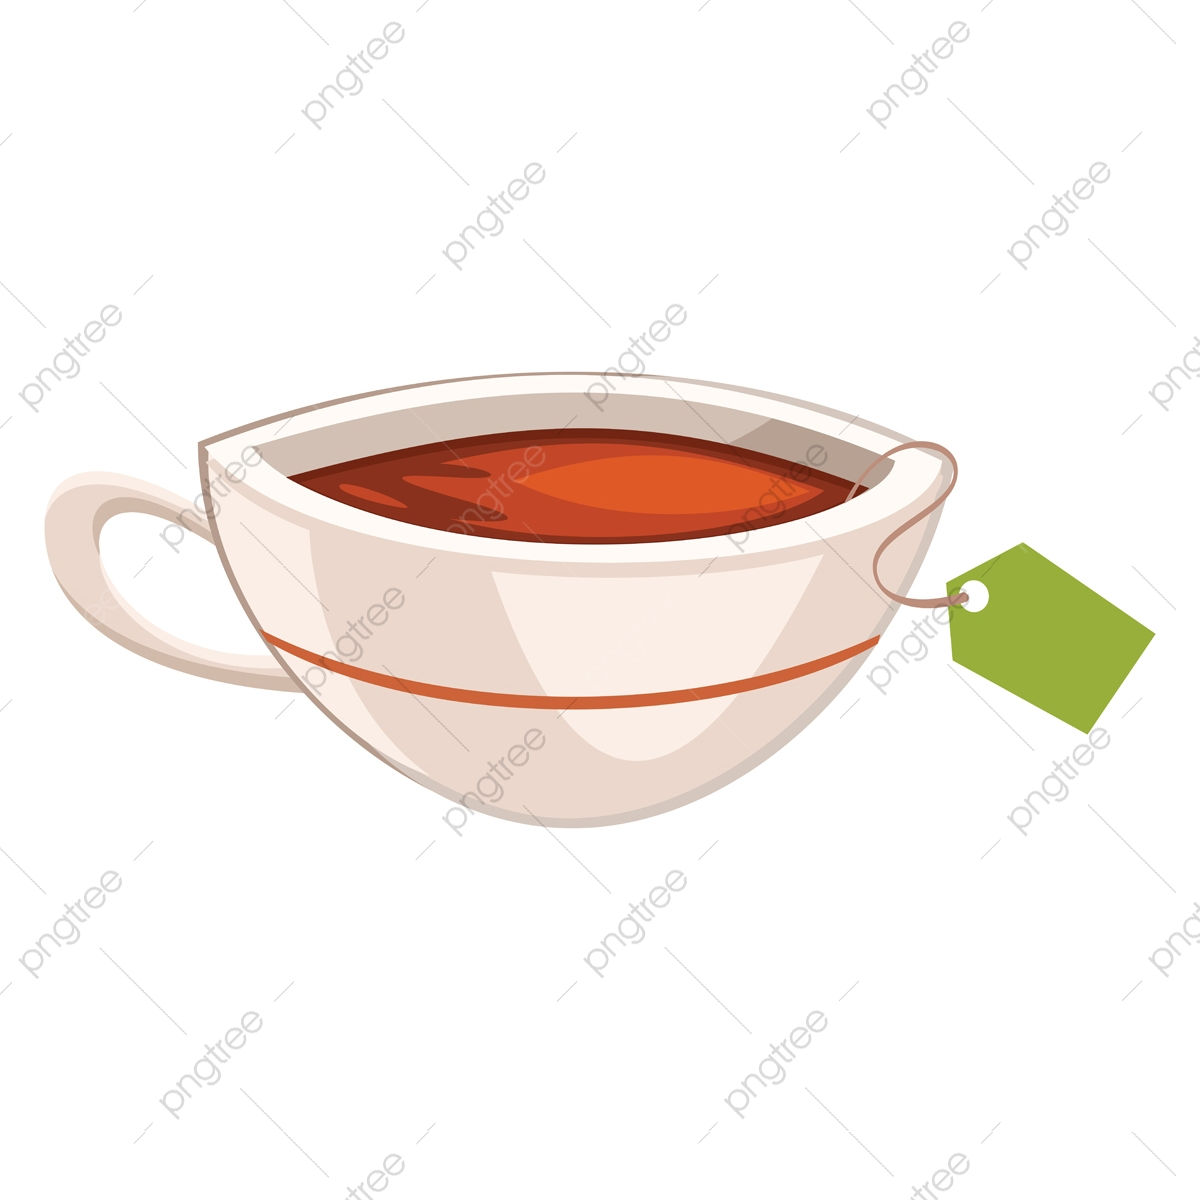 tea vector png free green tea tea cup milk tea vector images pngtree https pngtree com freepng image of english tea vector or color illustration 5274499 html